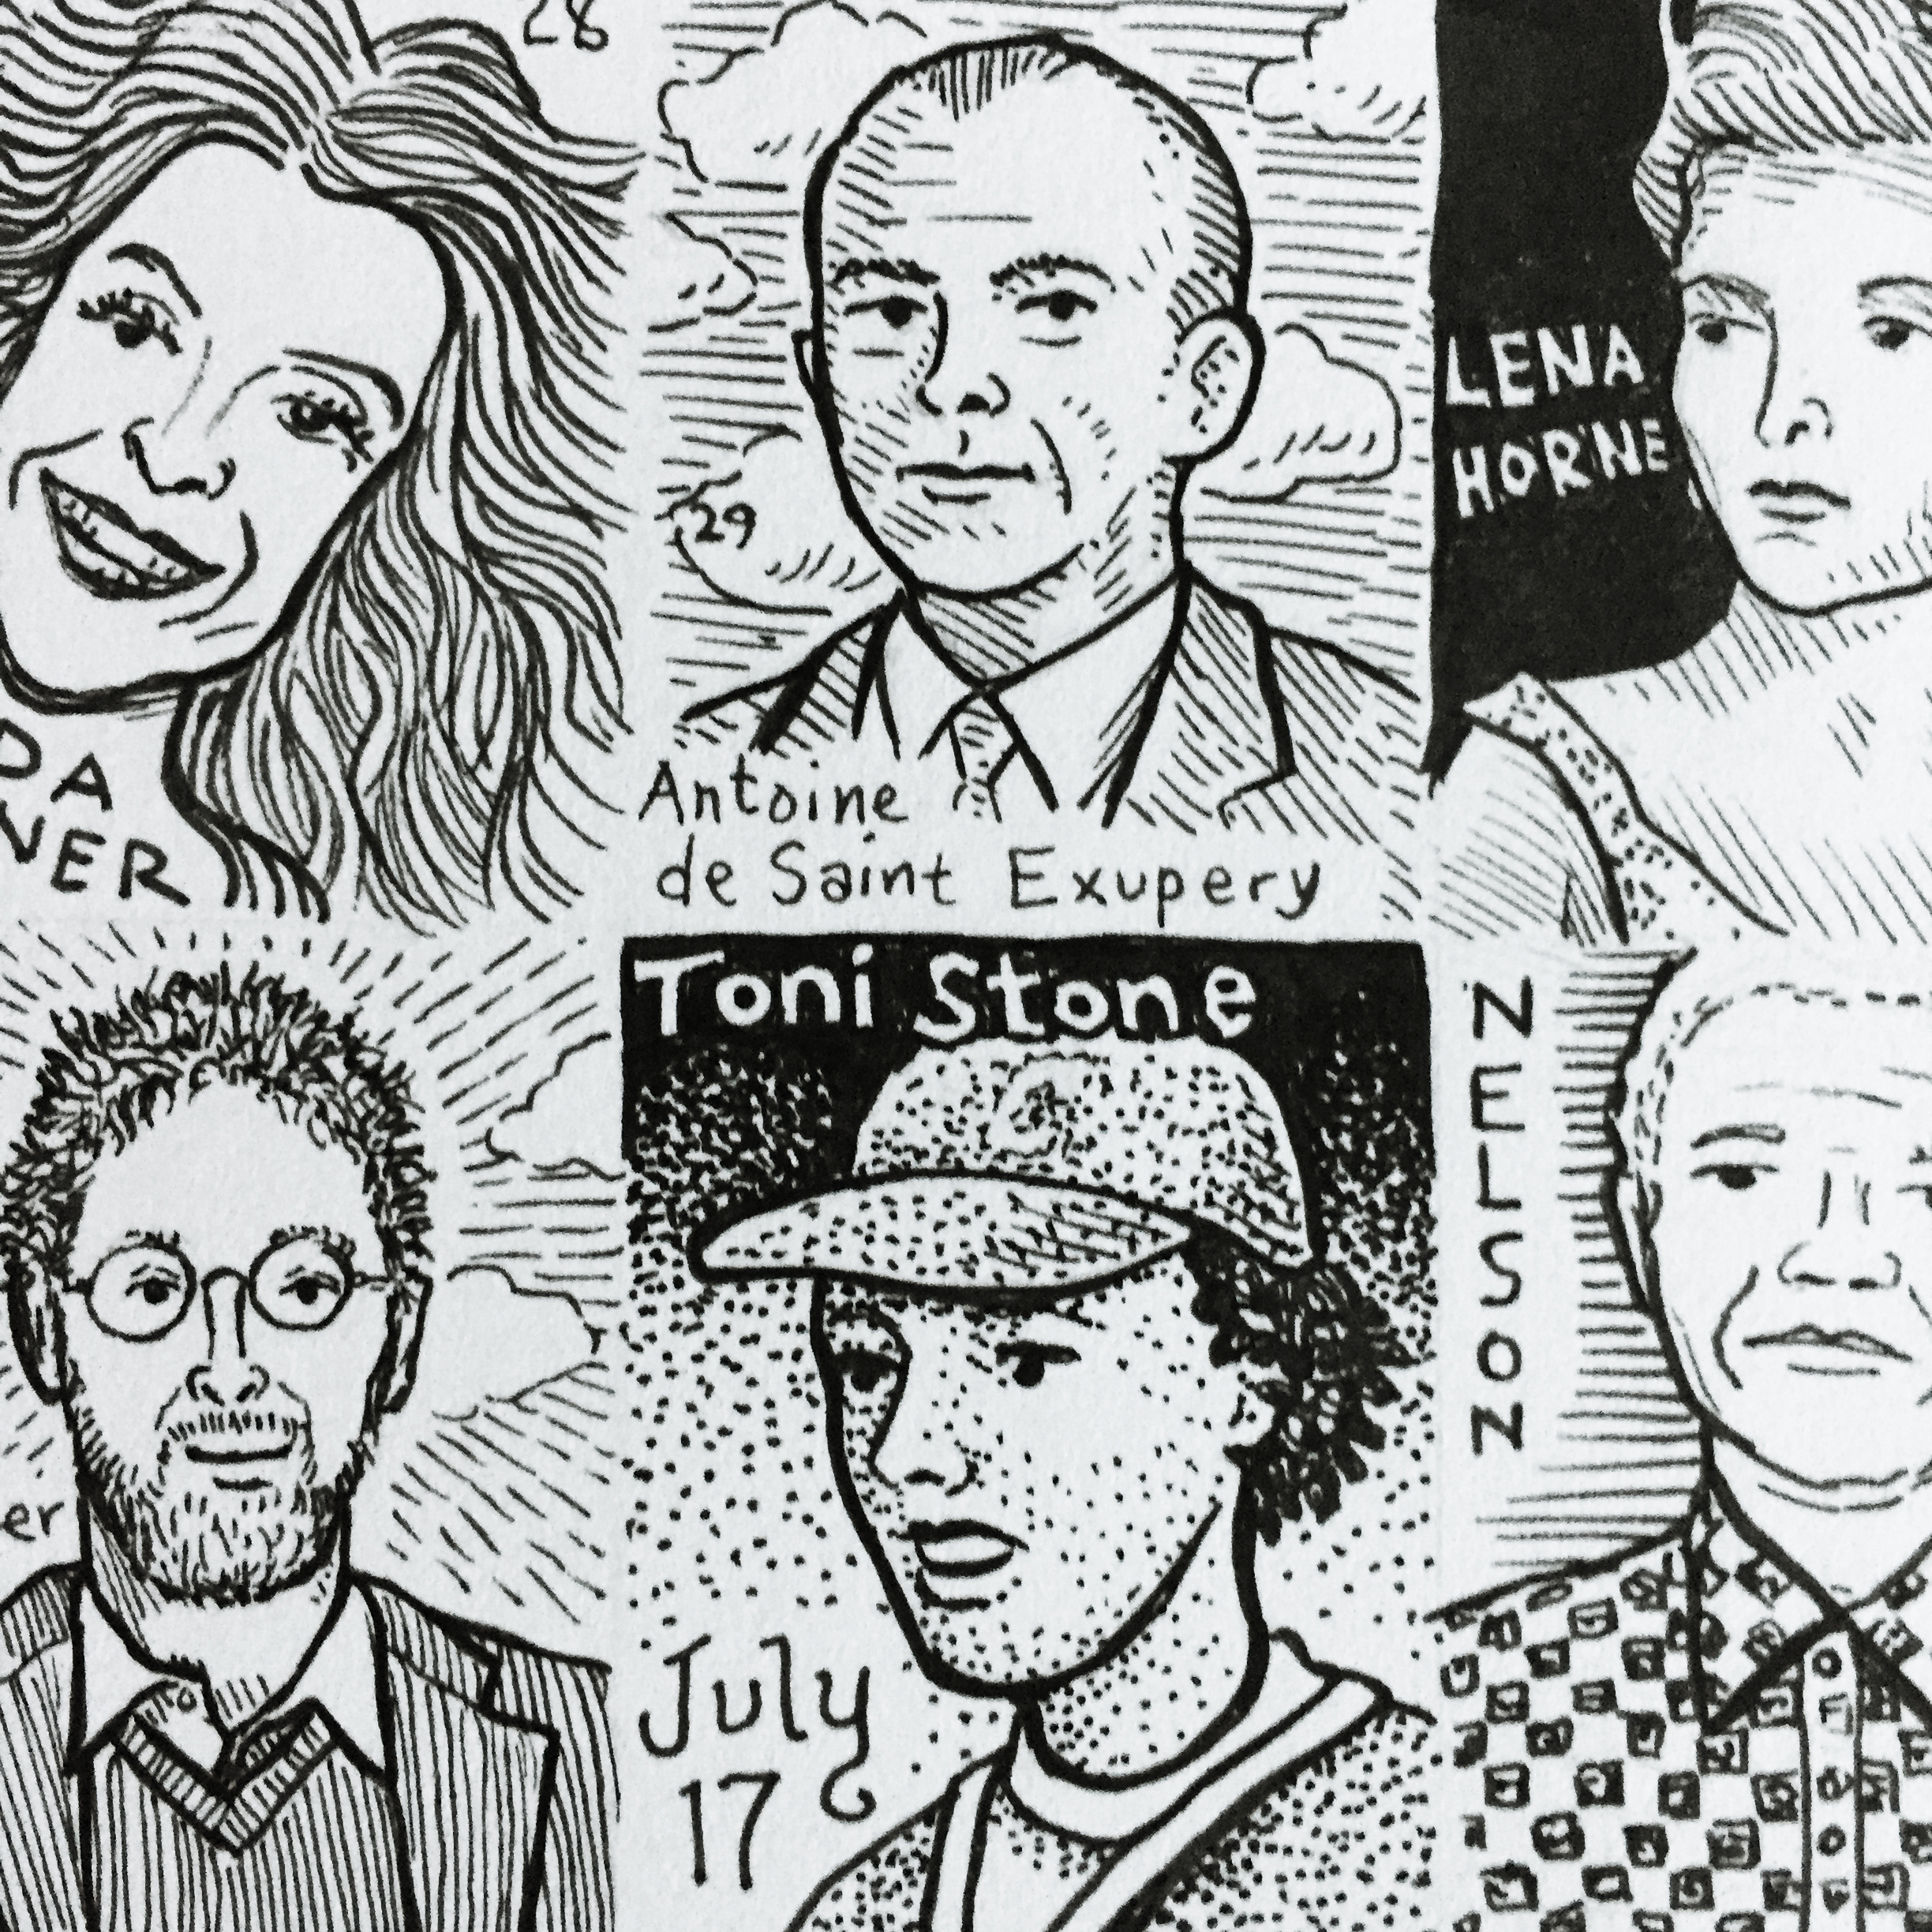 "Birthdays - My first of two June 2018 to June 2019 personal projects is to create a 22"" x 28"" drawing of 365 people who I think have made the world a better place. Artists, performers, activist, athletes, drawn daily at less than 1.5 inches tall. Each drawing celebrates someone on their birthday. Visit my Instagram account @gregorynemec to follow my progress and see what wonderful person was born today."